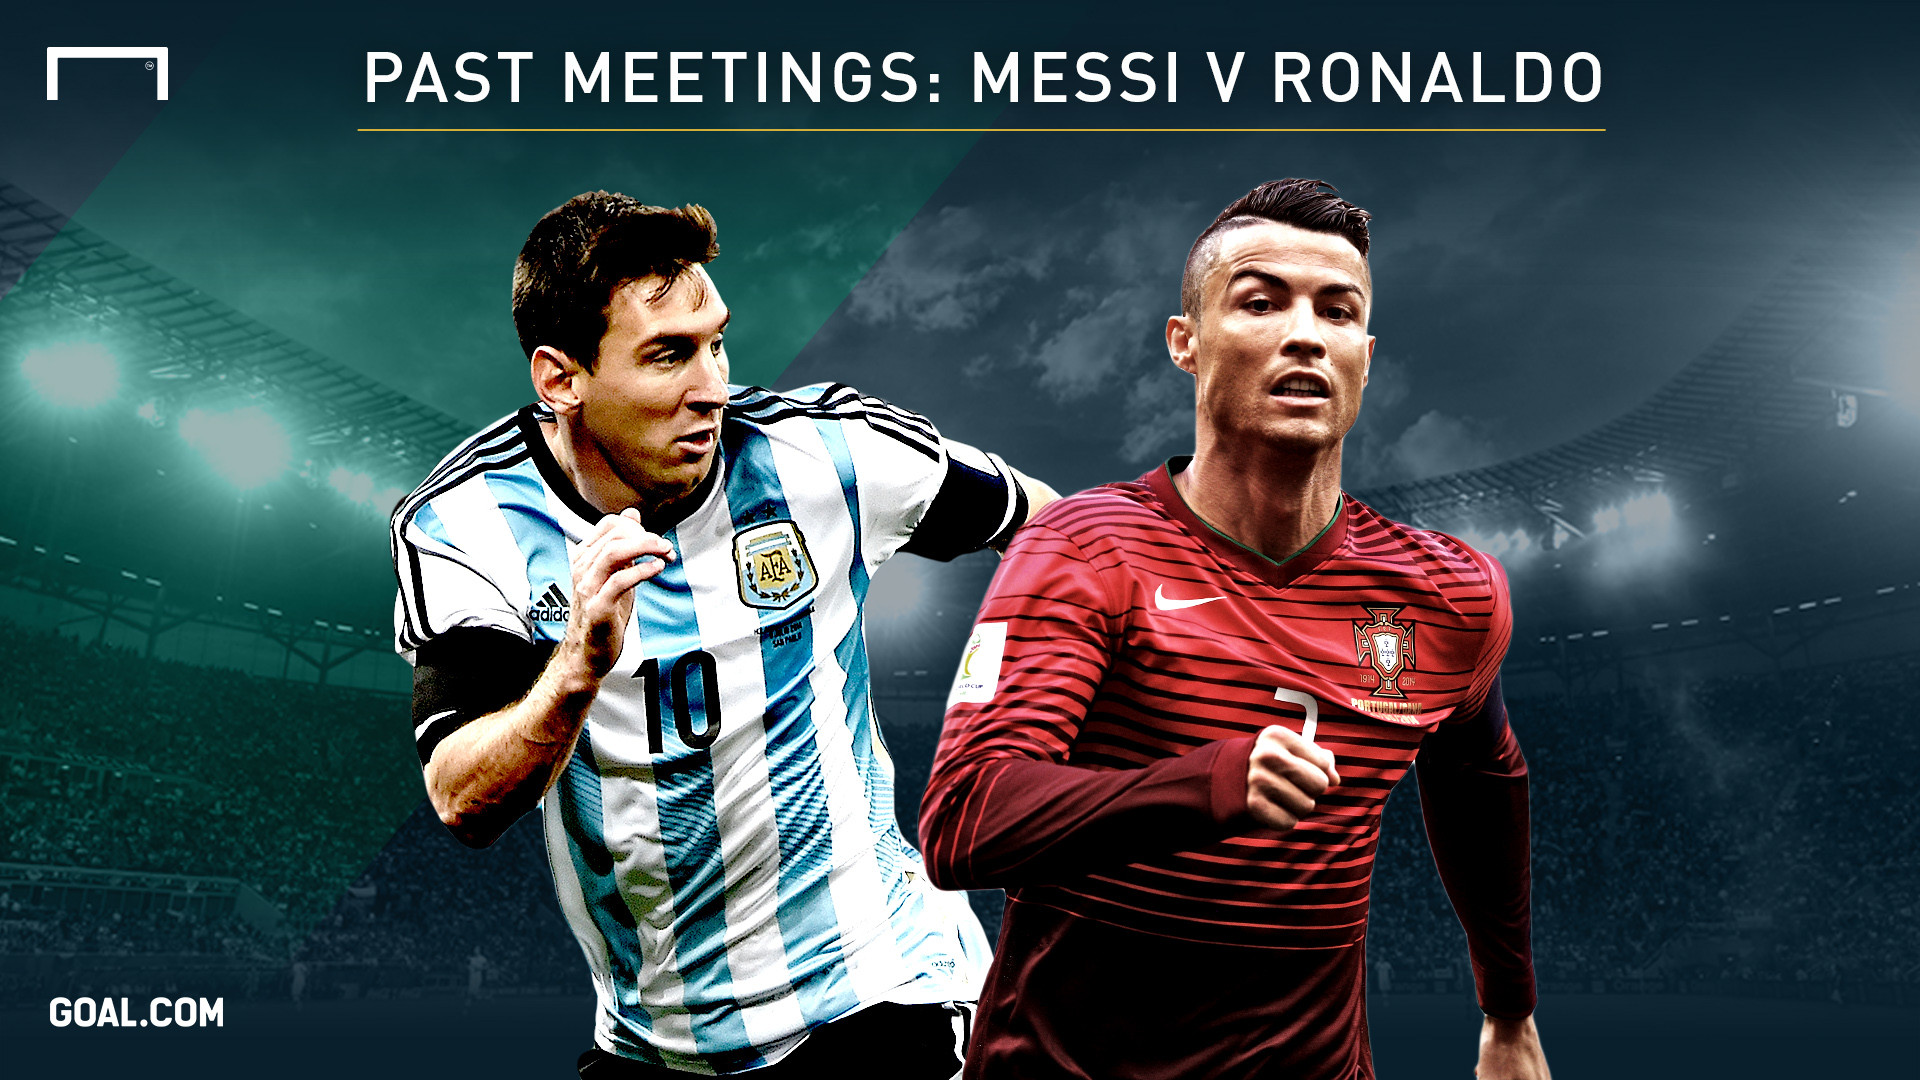 ronaldo v messi Cristiano ronaldo and lionel messi are the best soccer players of their  generation, but both are likely nearing the end of their world cup.